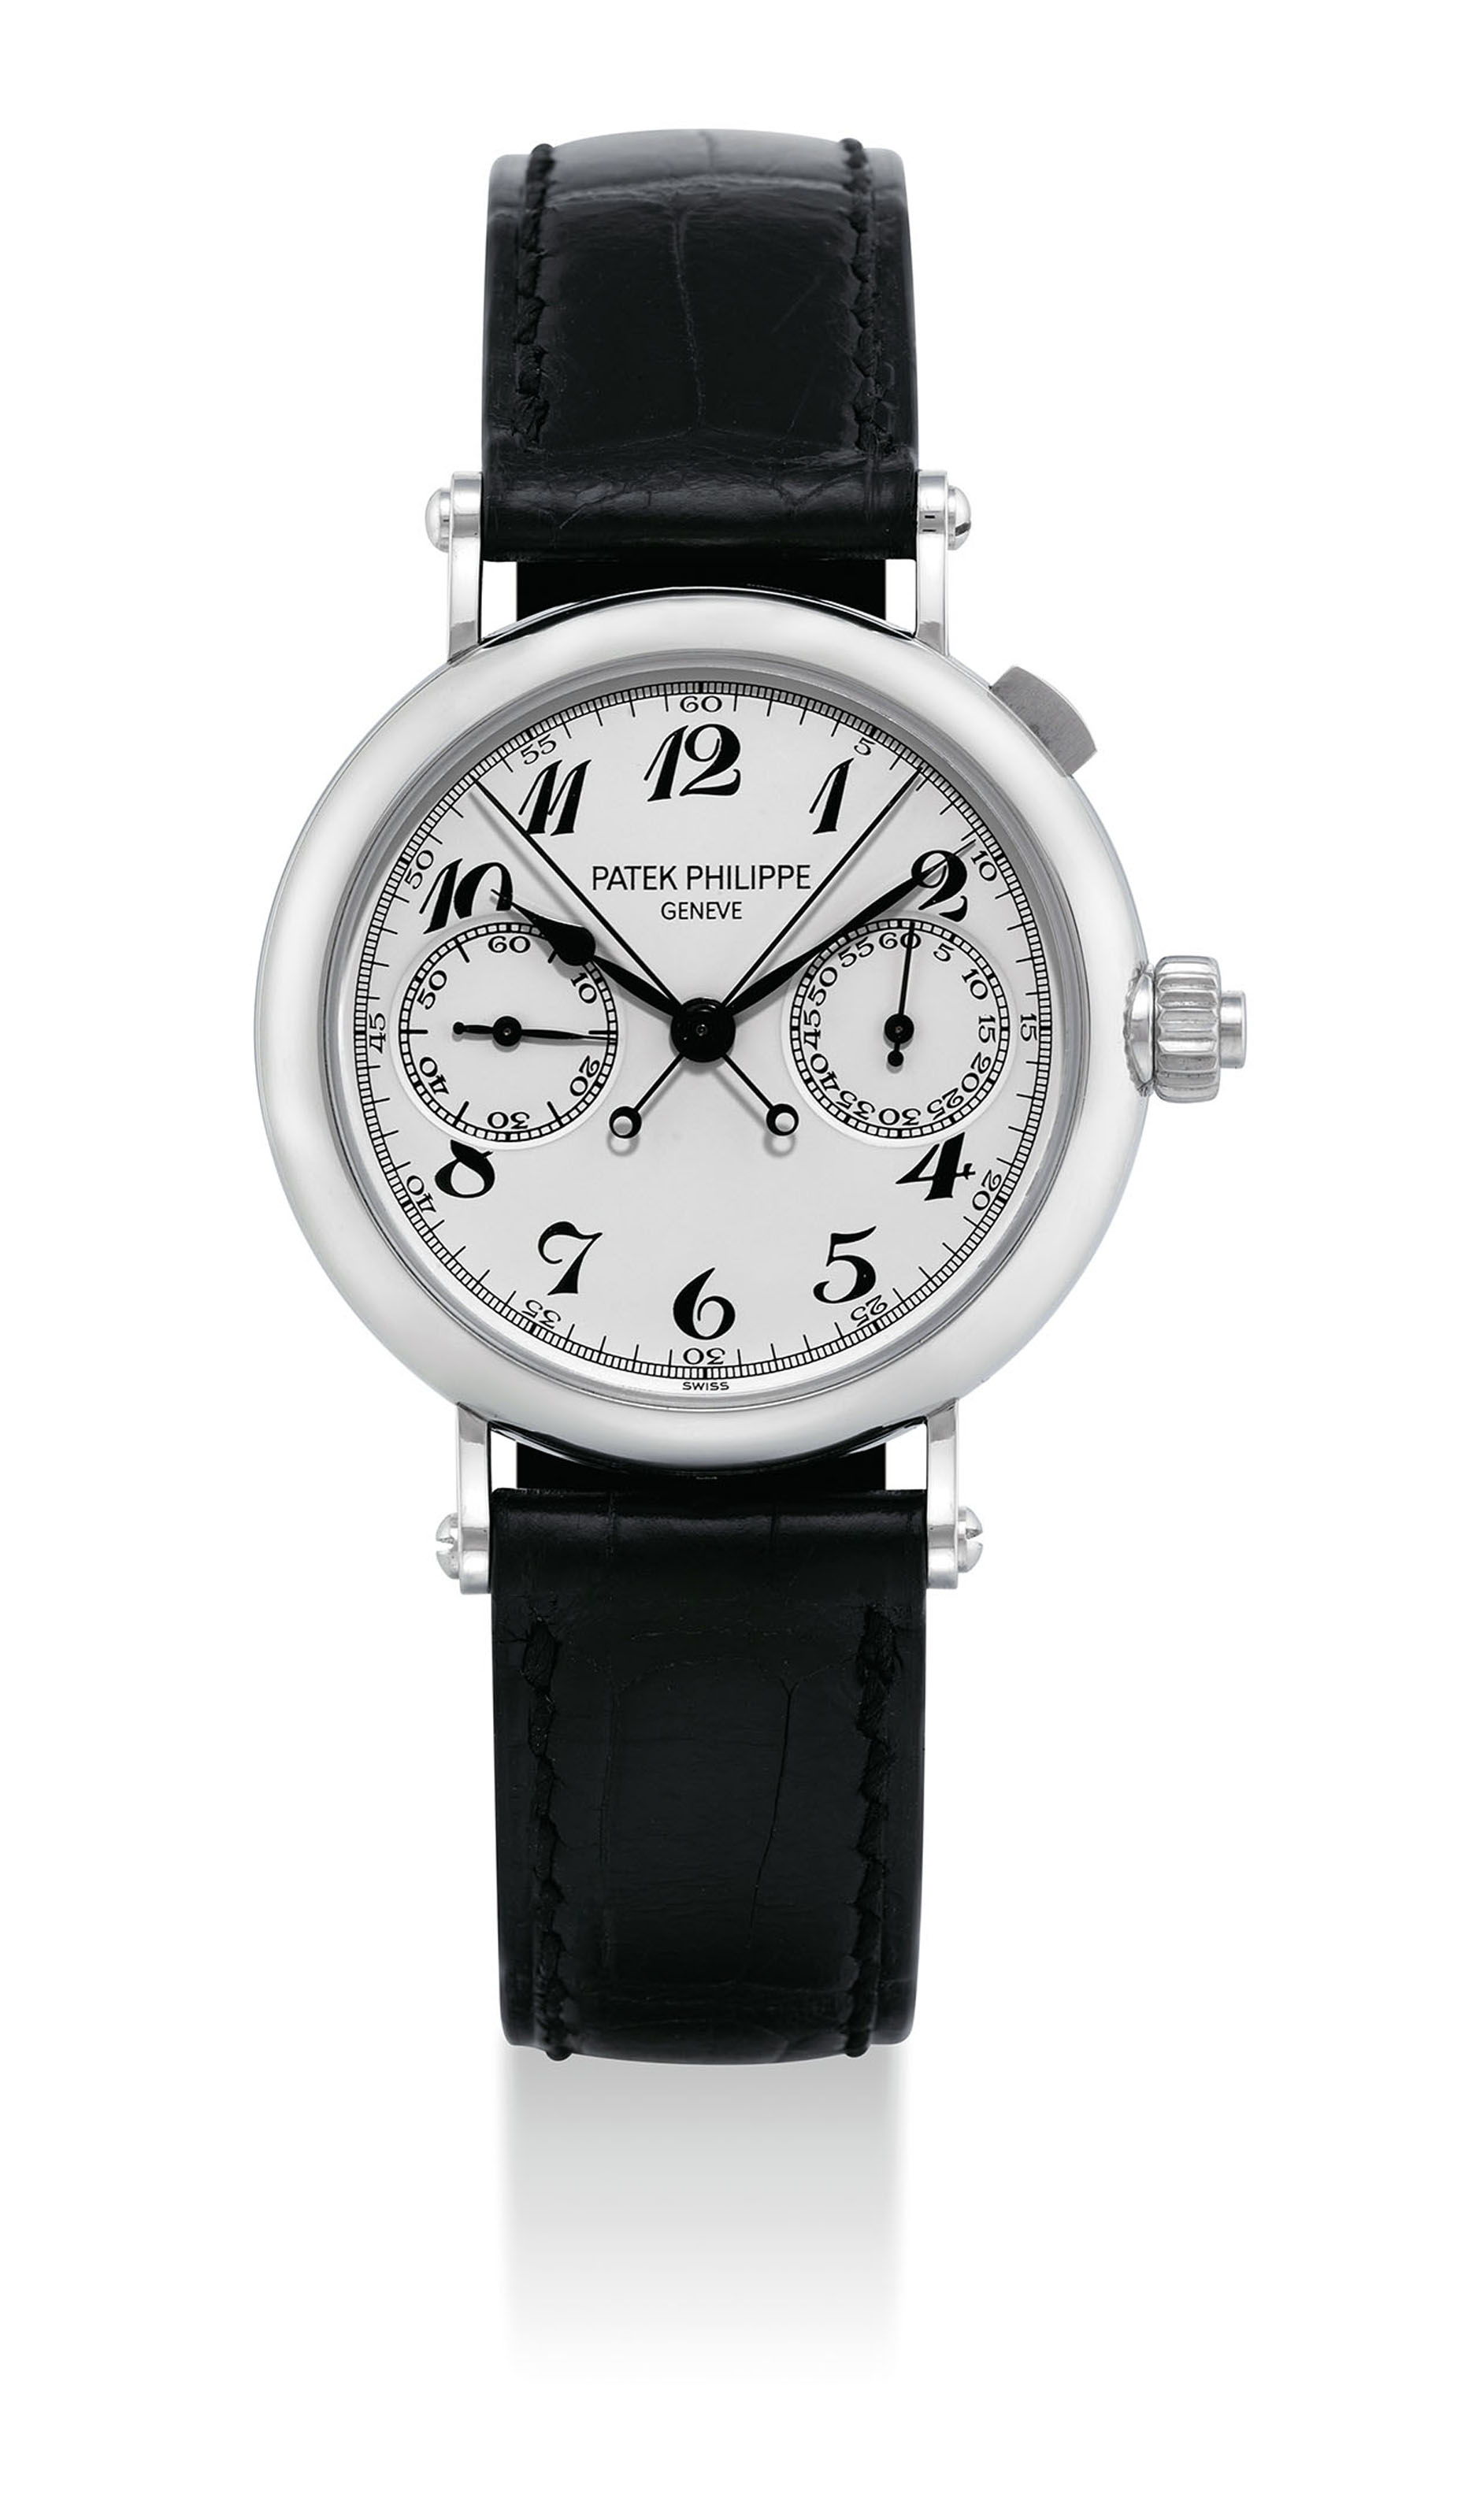 PATEK PHILIPPE. A VERY FINE AND VERY RARE PLATINUM SPLIT SECONDS CHRONOGRAPH WRISTWATCH WITH ORIGINAL CERTIFICATE AND BOX